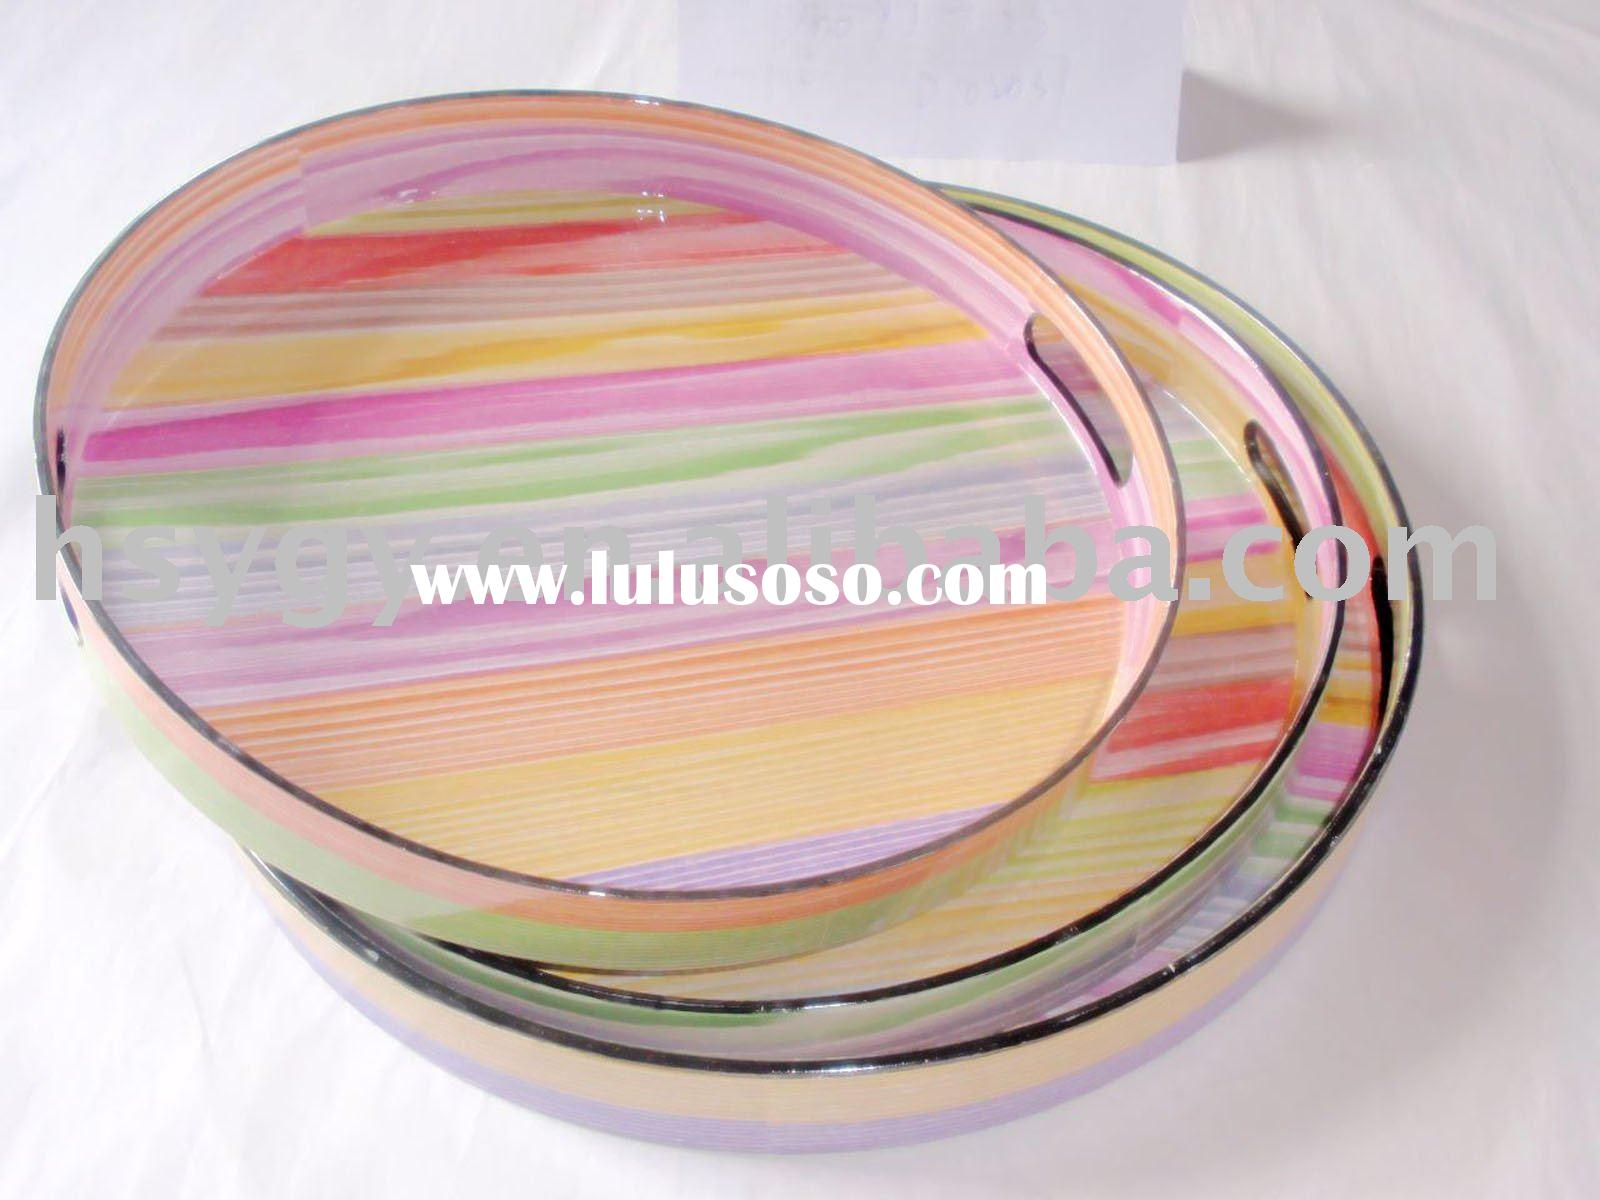 Round pp plastic serving tray